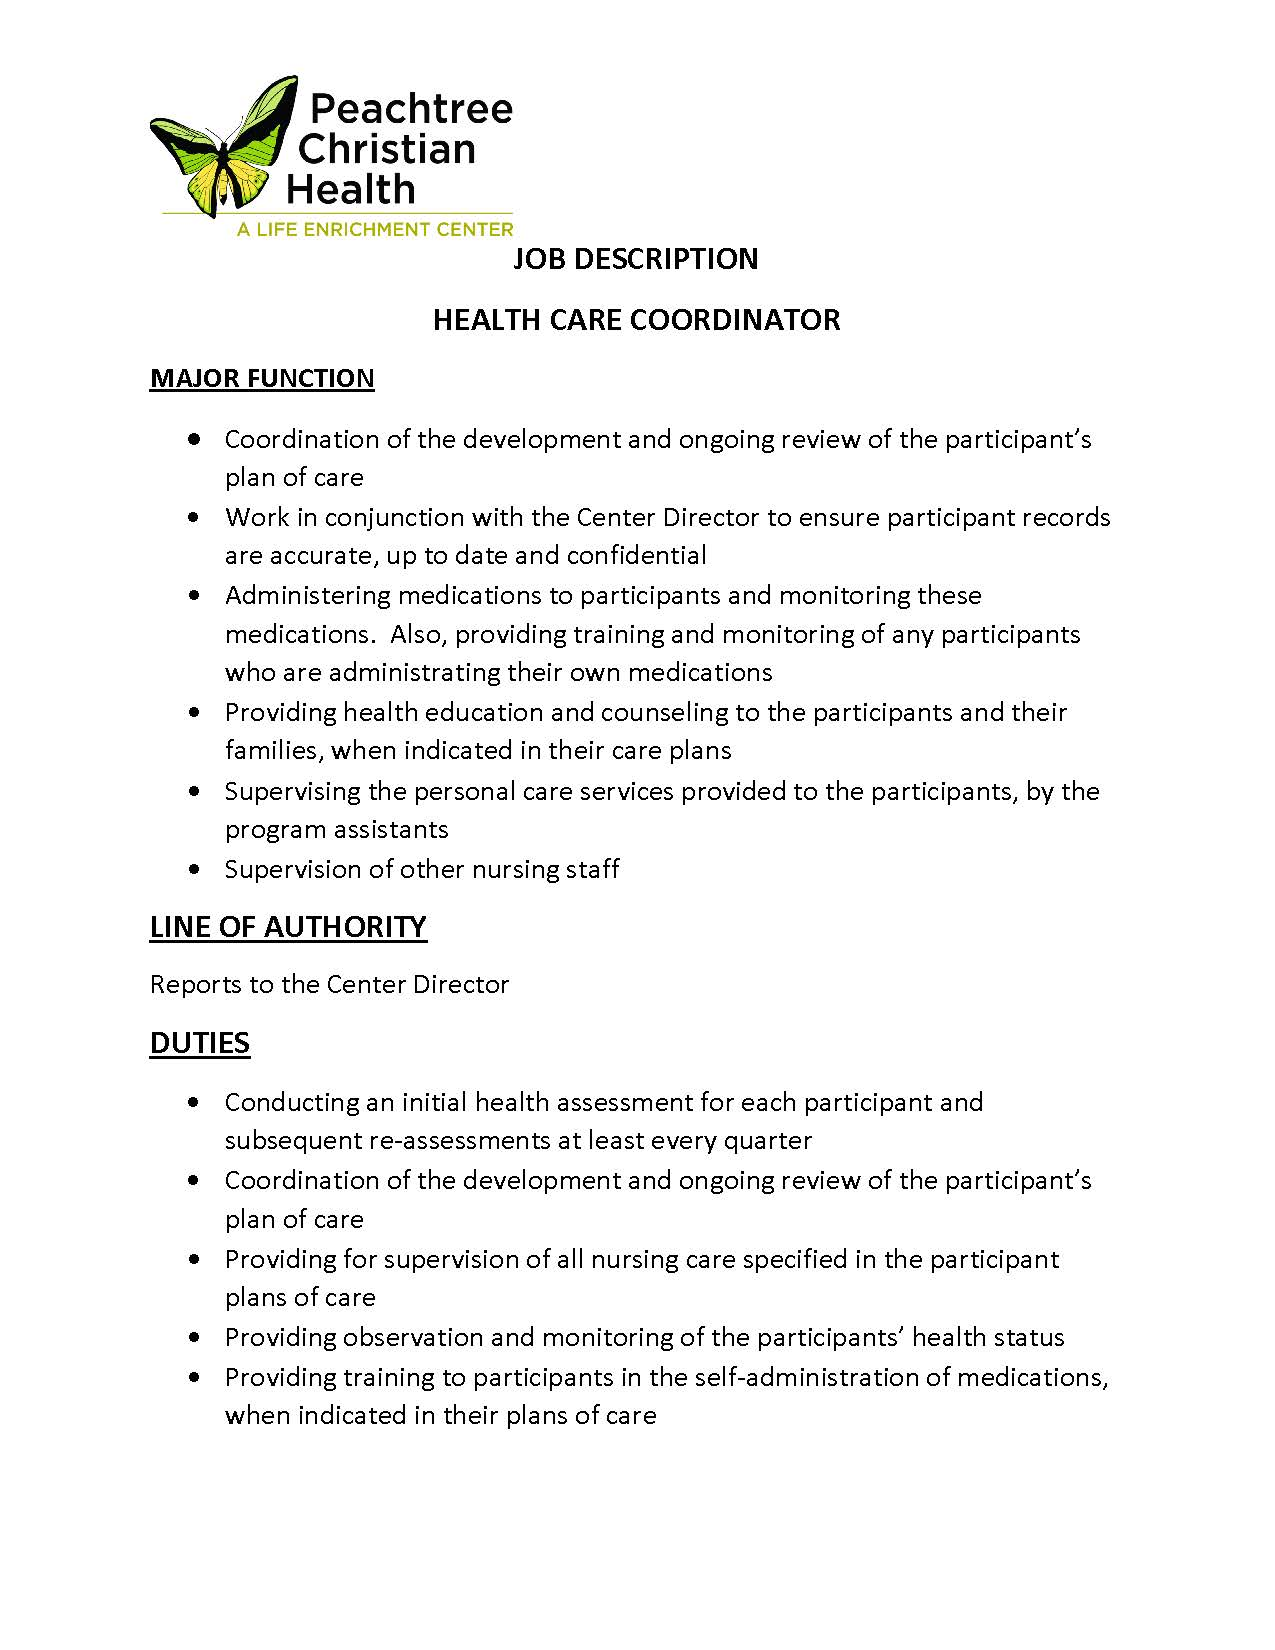 PCH Job Description Health Care Coordinator_Page_1